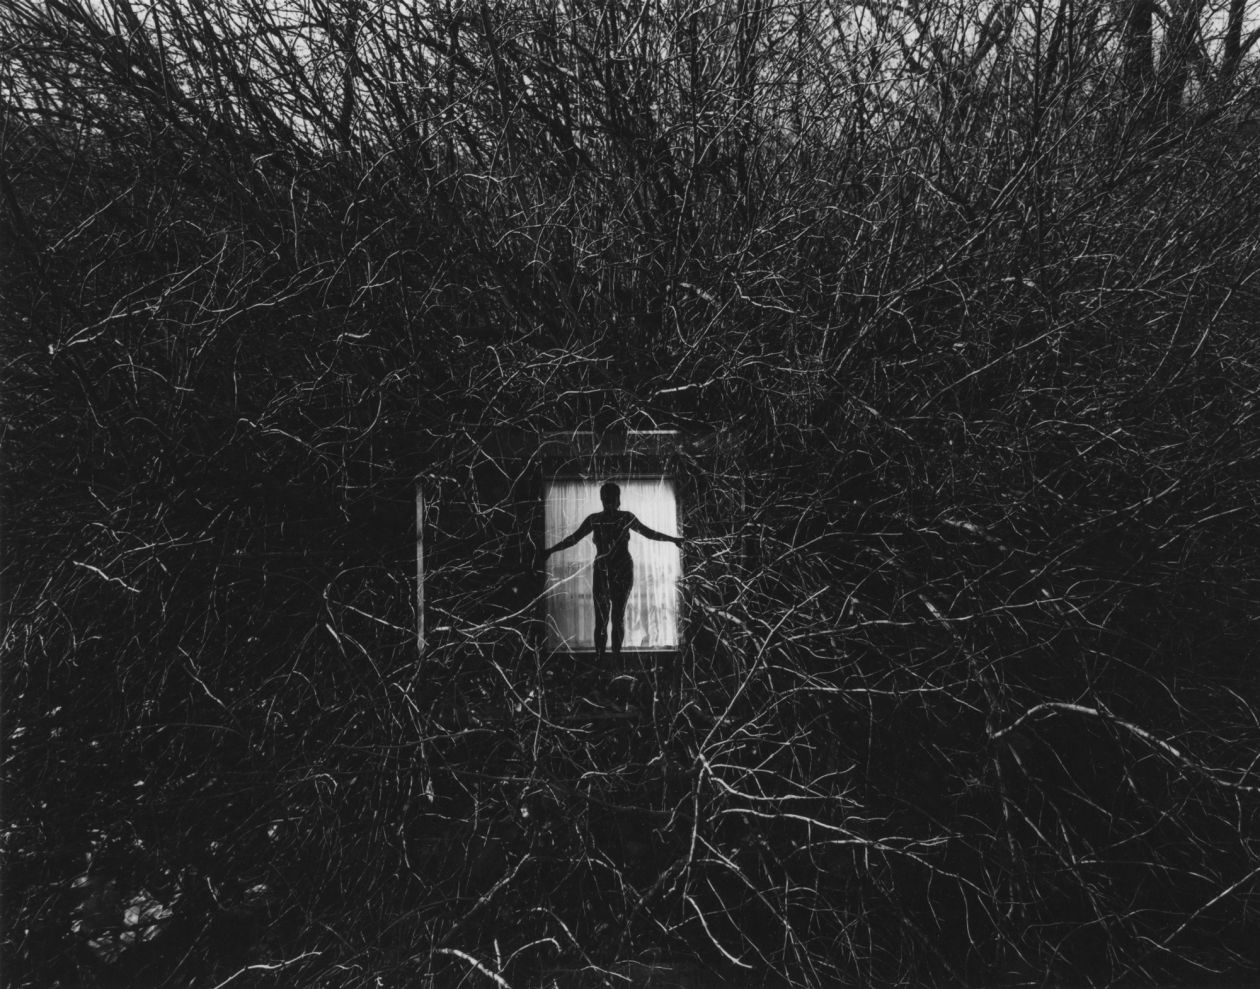 Eleanor, Chicago (1951) by Harry Callahan